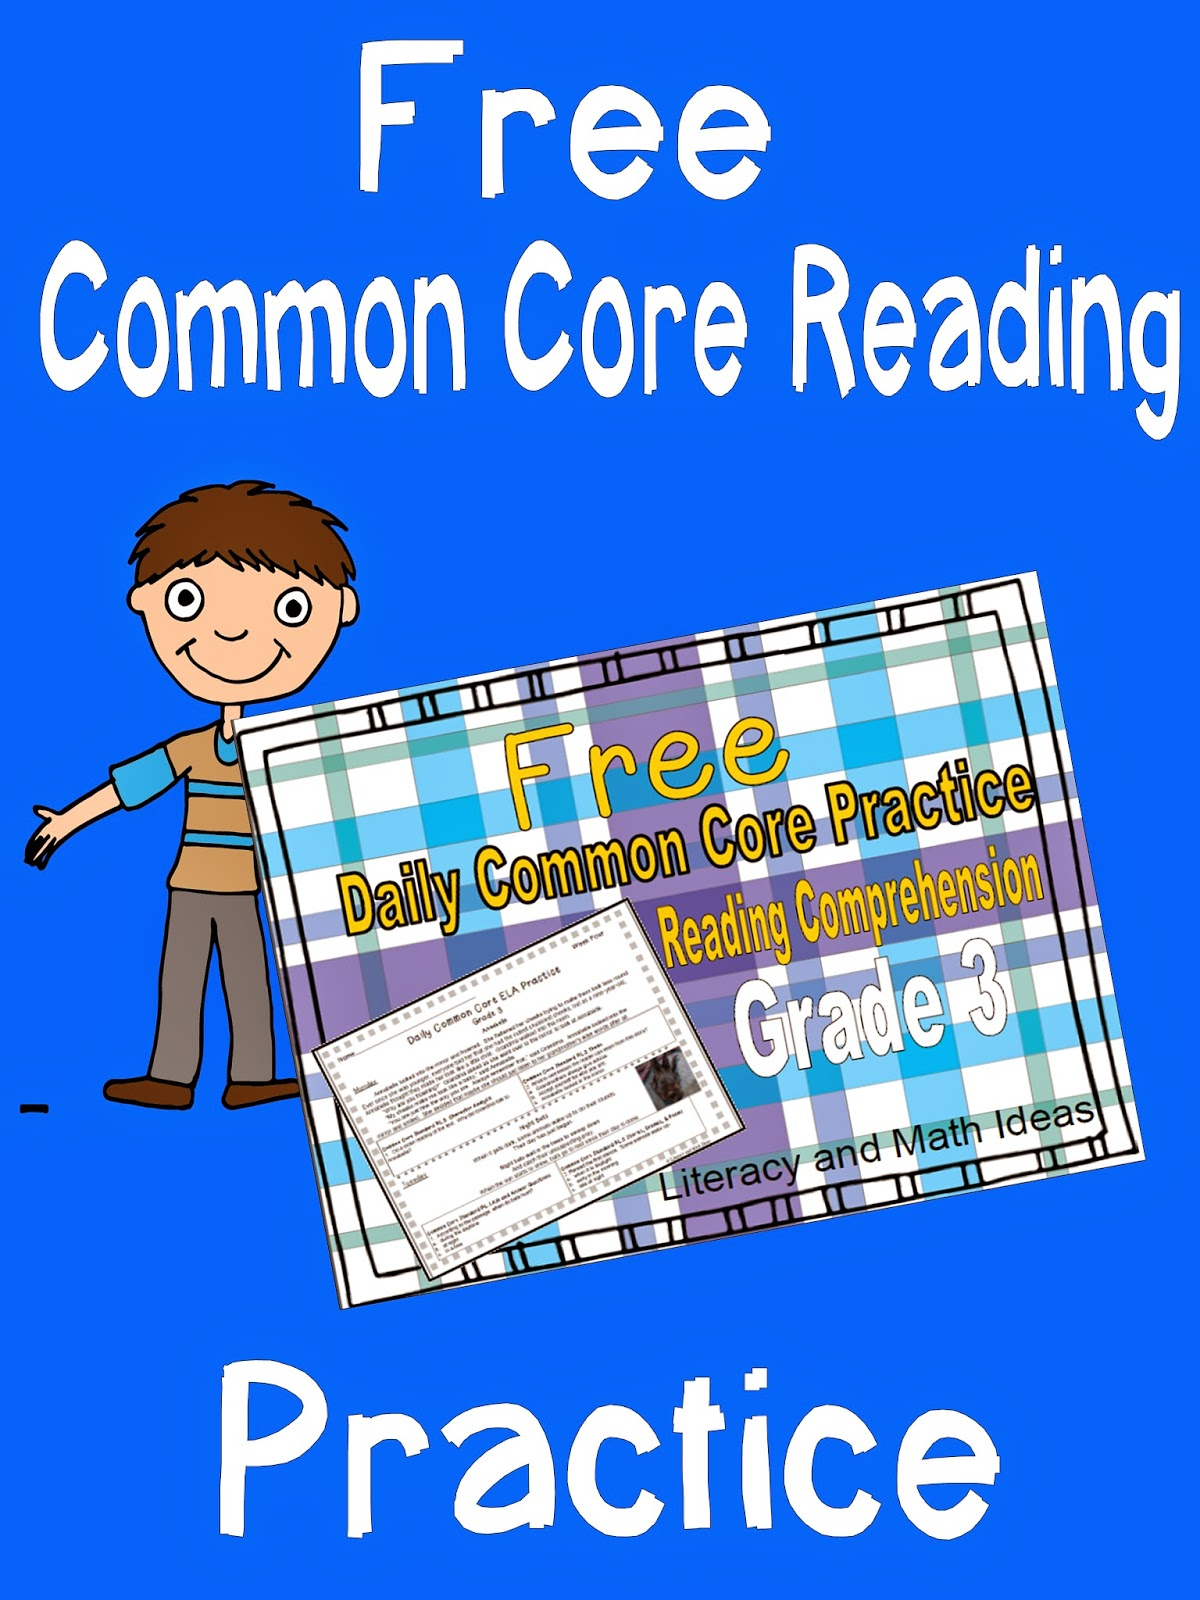 Literacy Amp Math Ideas Free Grade 3 Daily Common Core